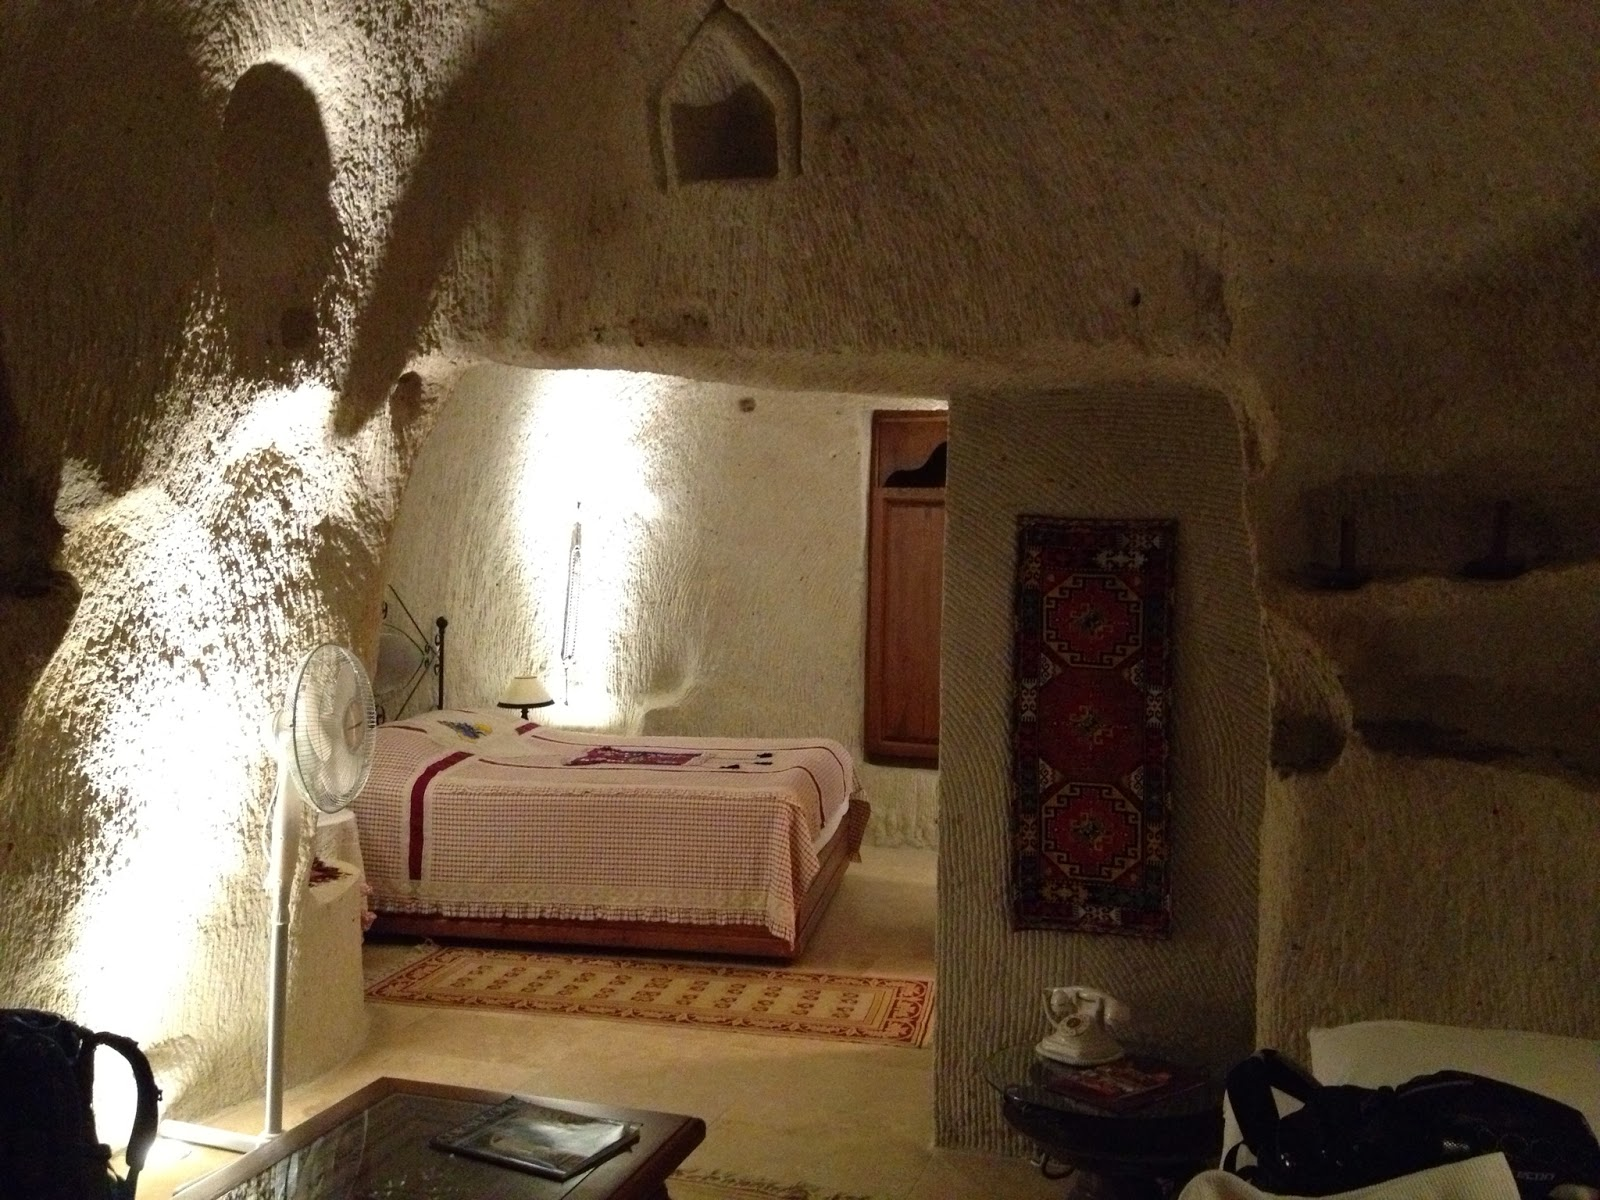 Cappadocia - Our cave sweet cave for 2 nights